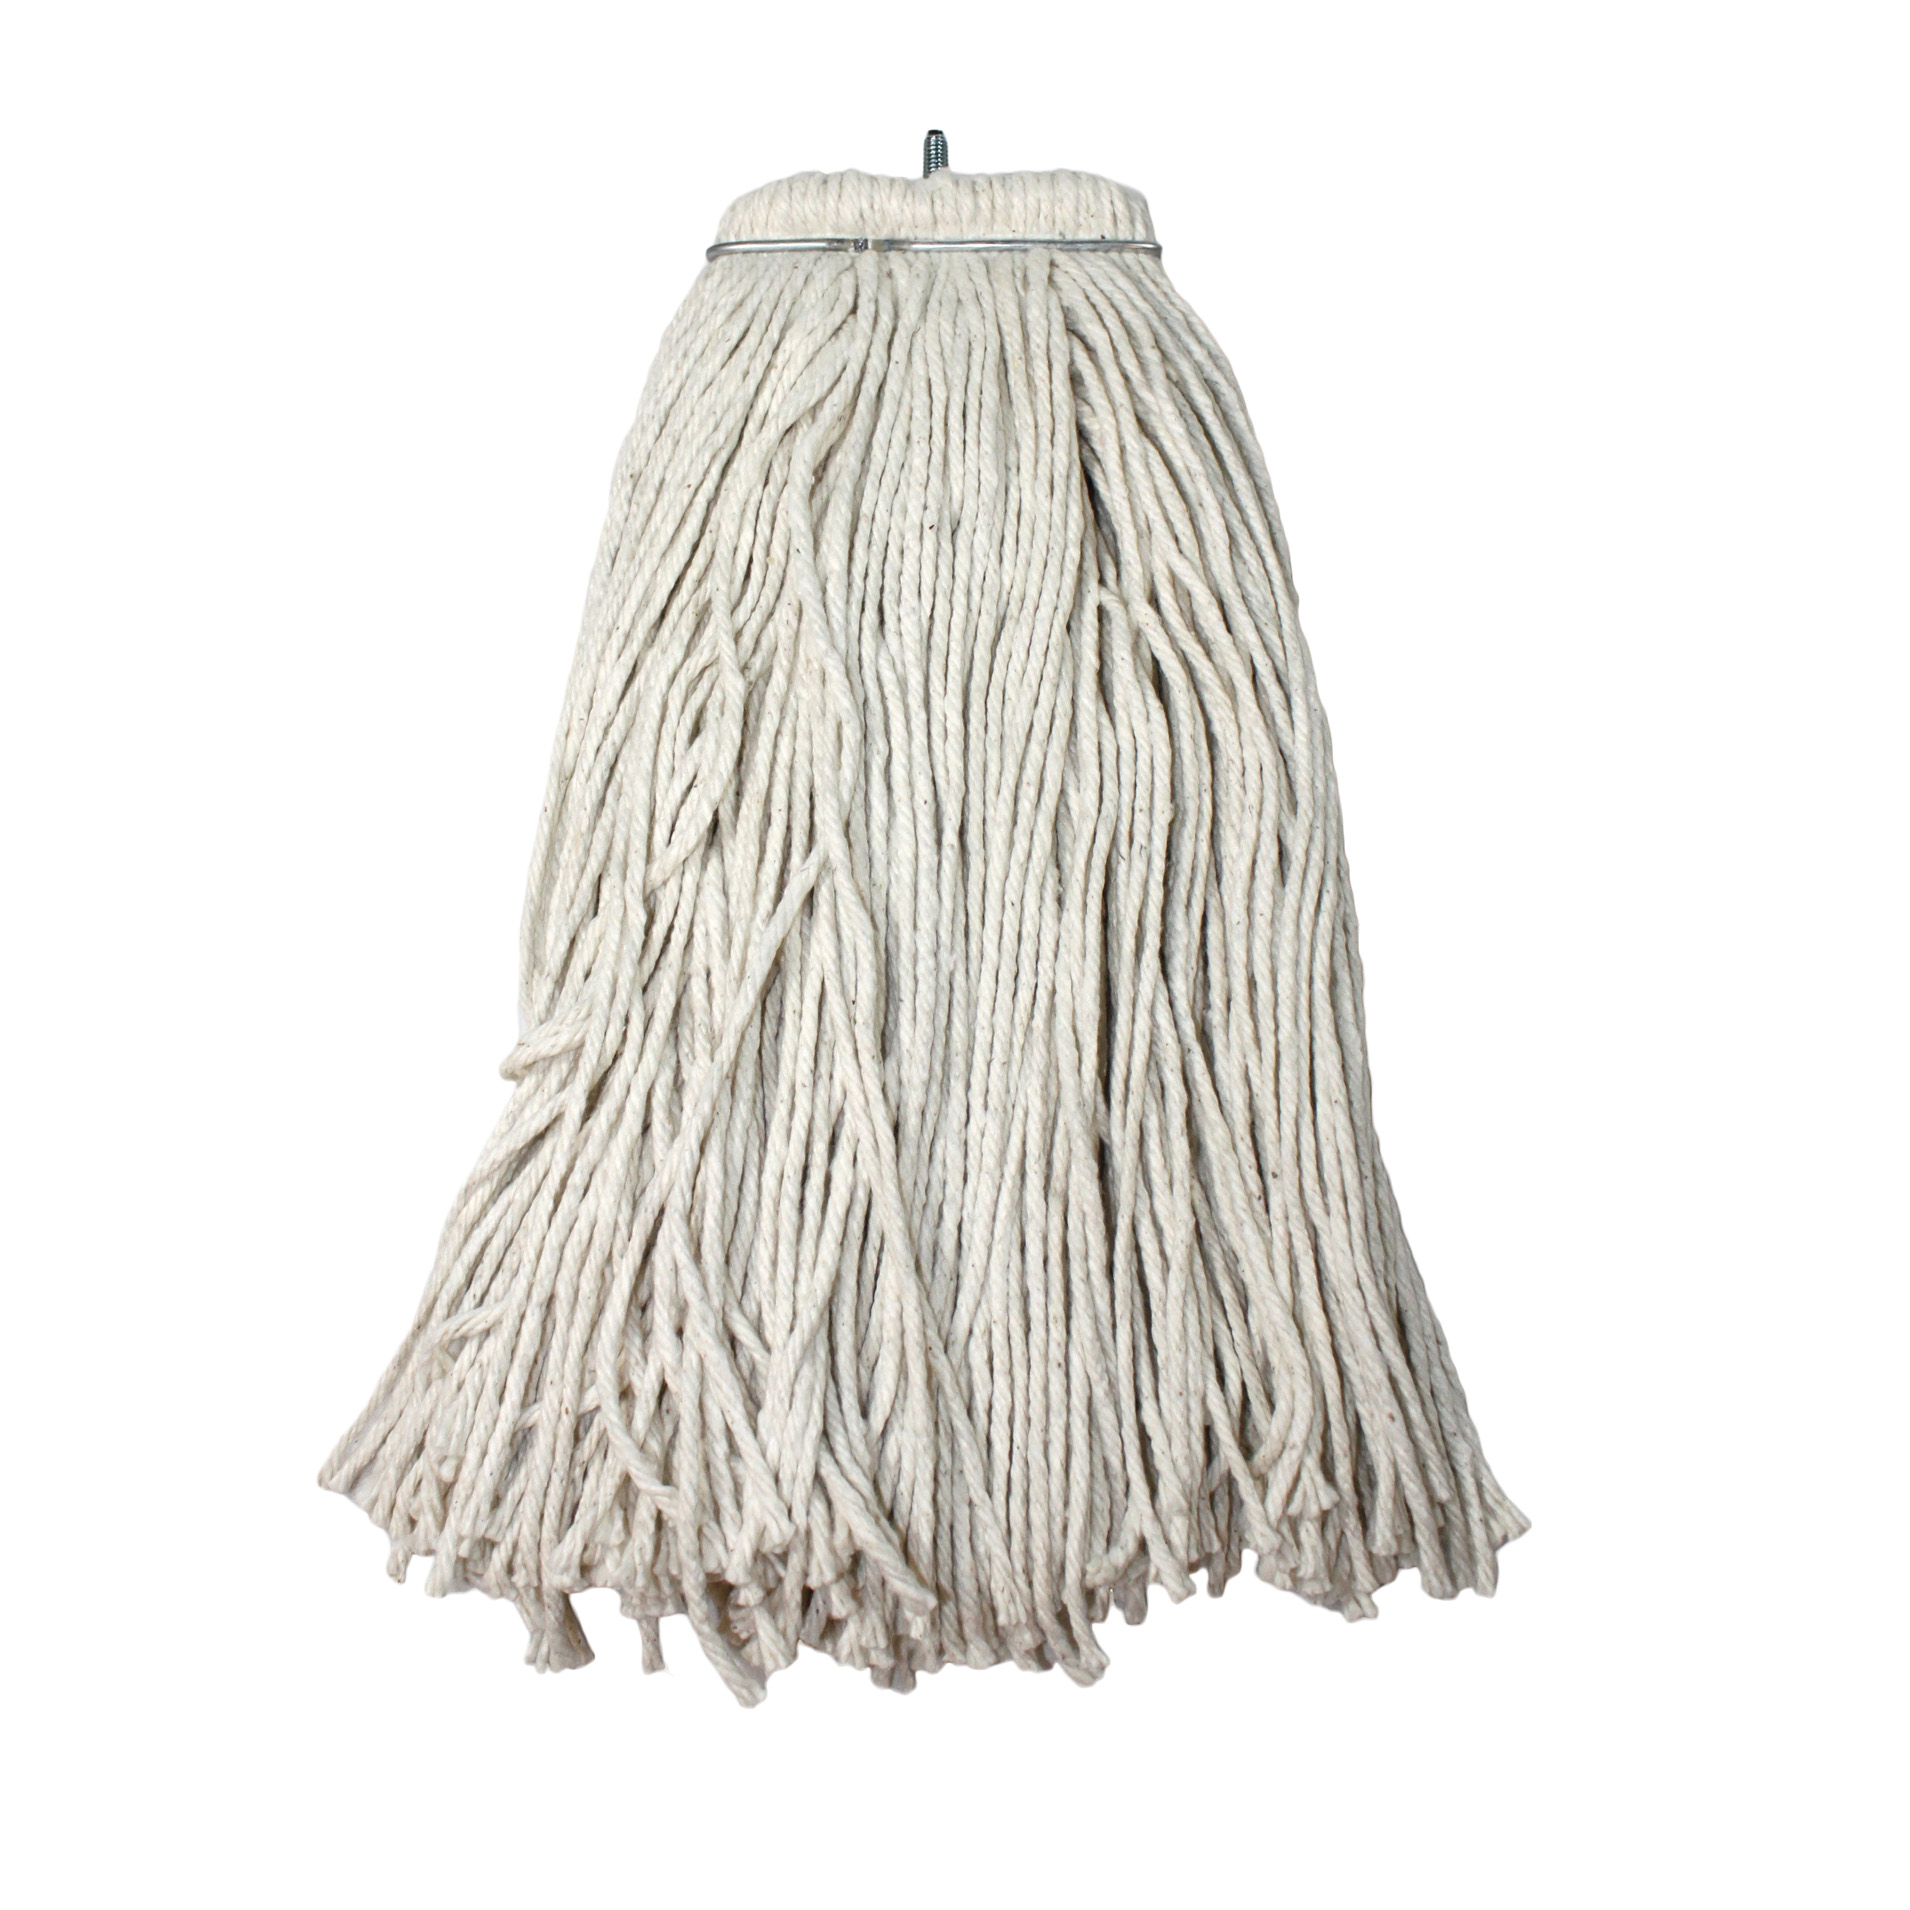 Impact Products 61160 wet mop head